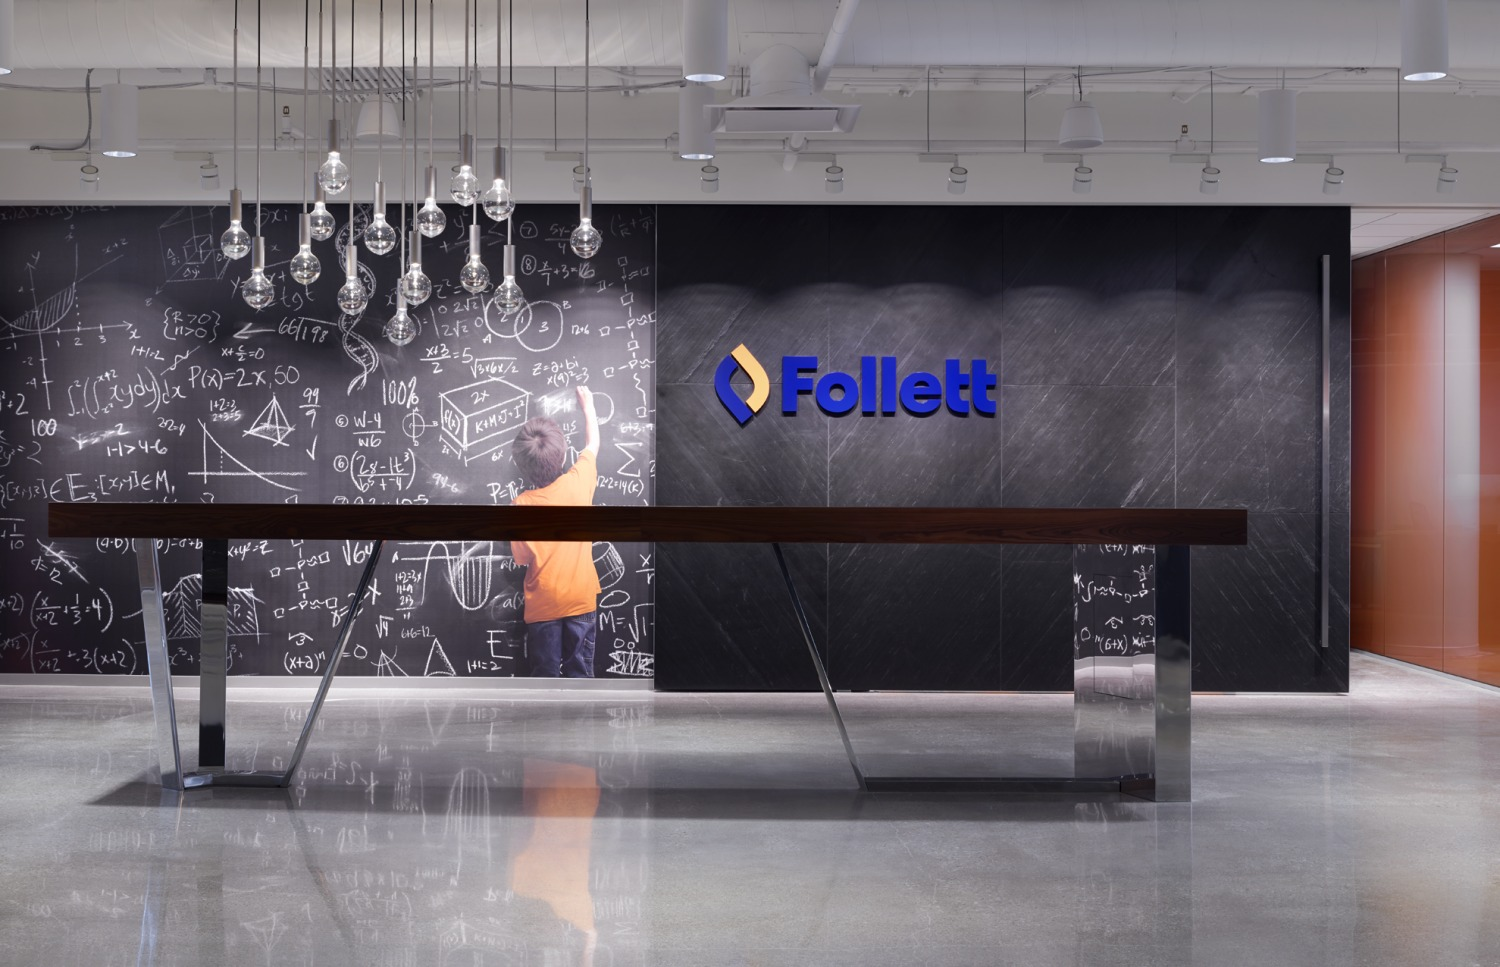 Follett, Inc.